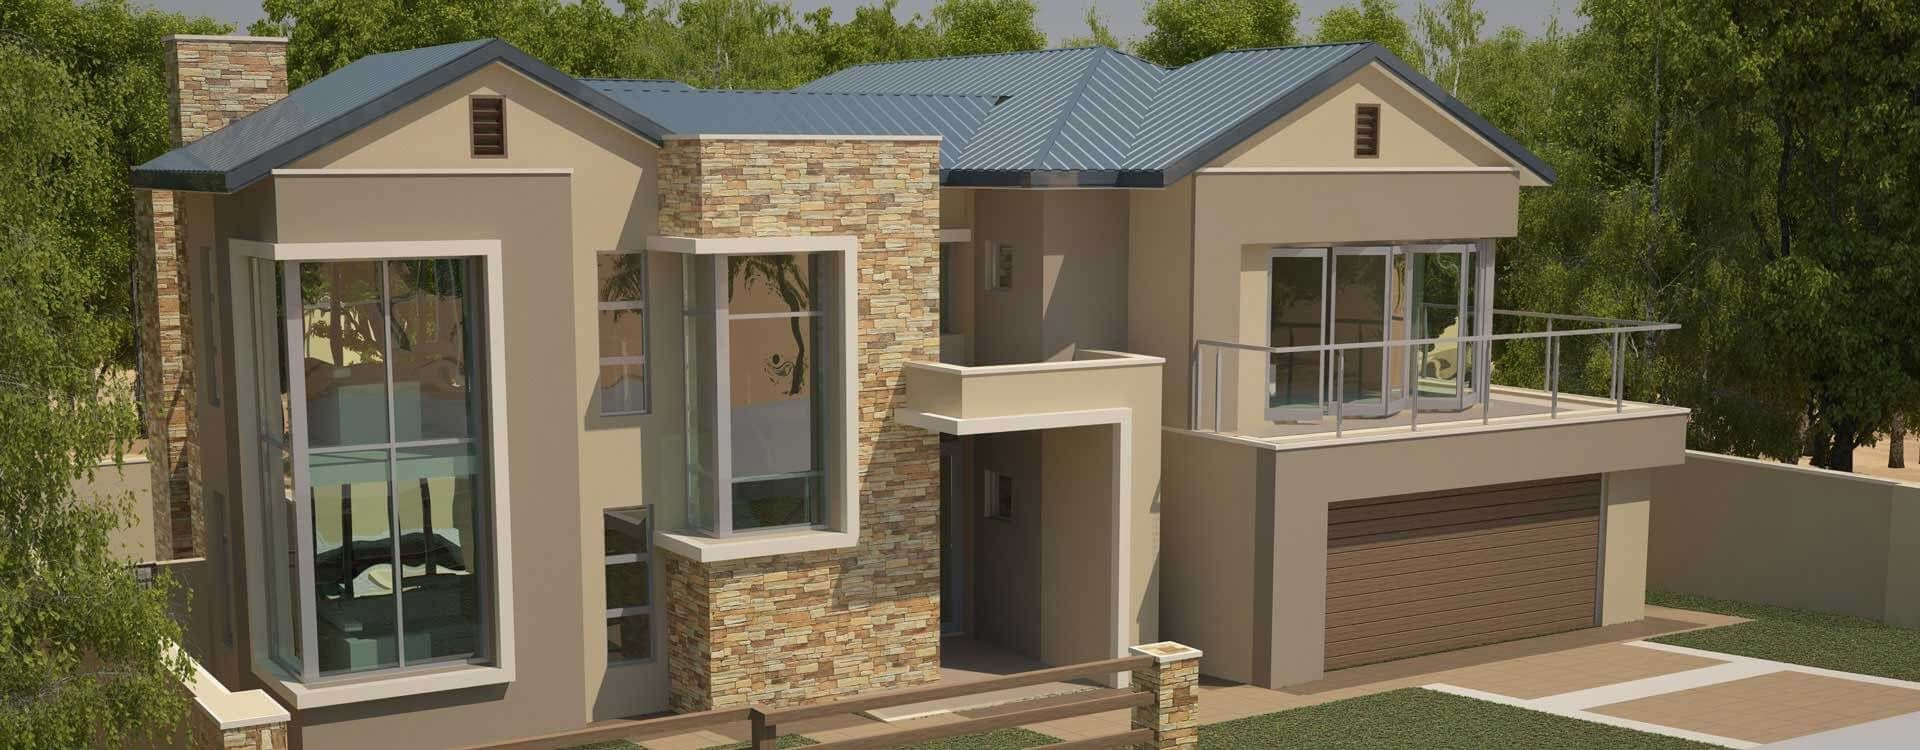 House plans south africa double storey houses bedroom house plans in ghana